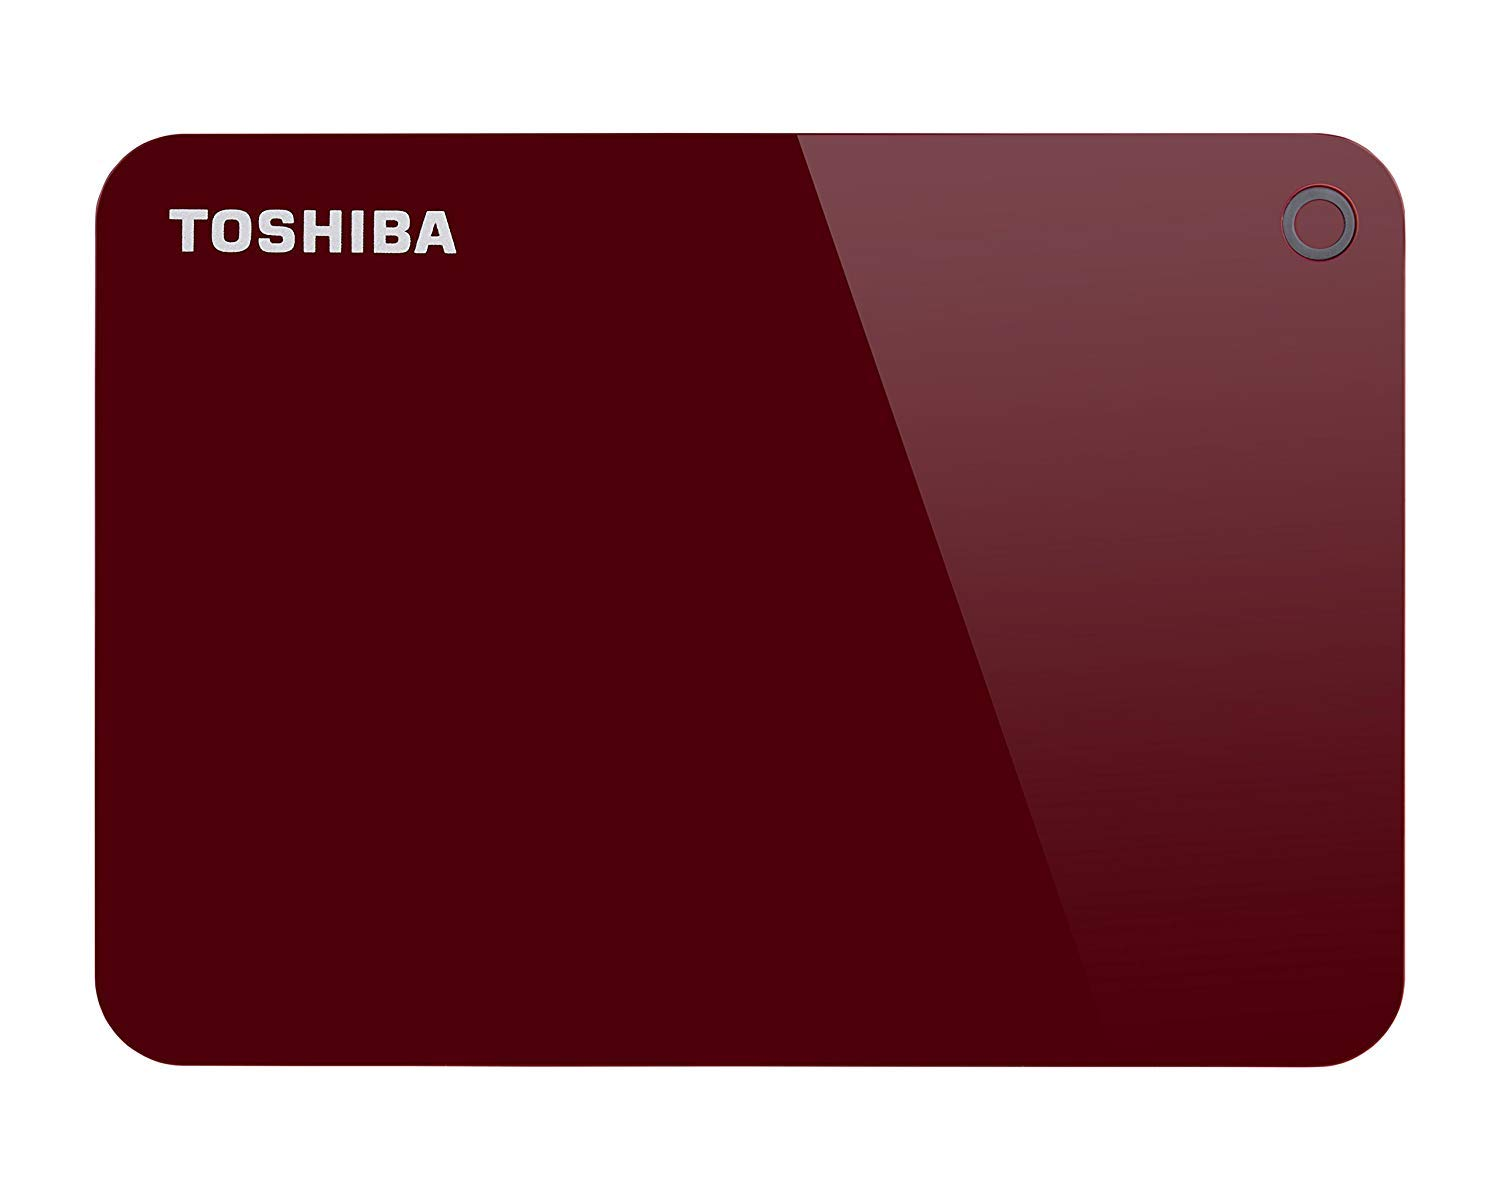 Amazon.com: Toshiba Canvio Advance - Disco duro externo ...